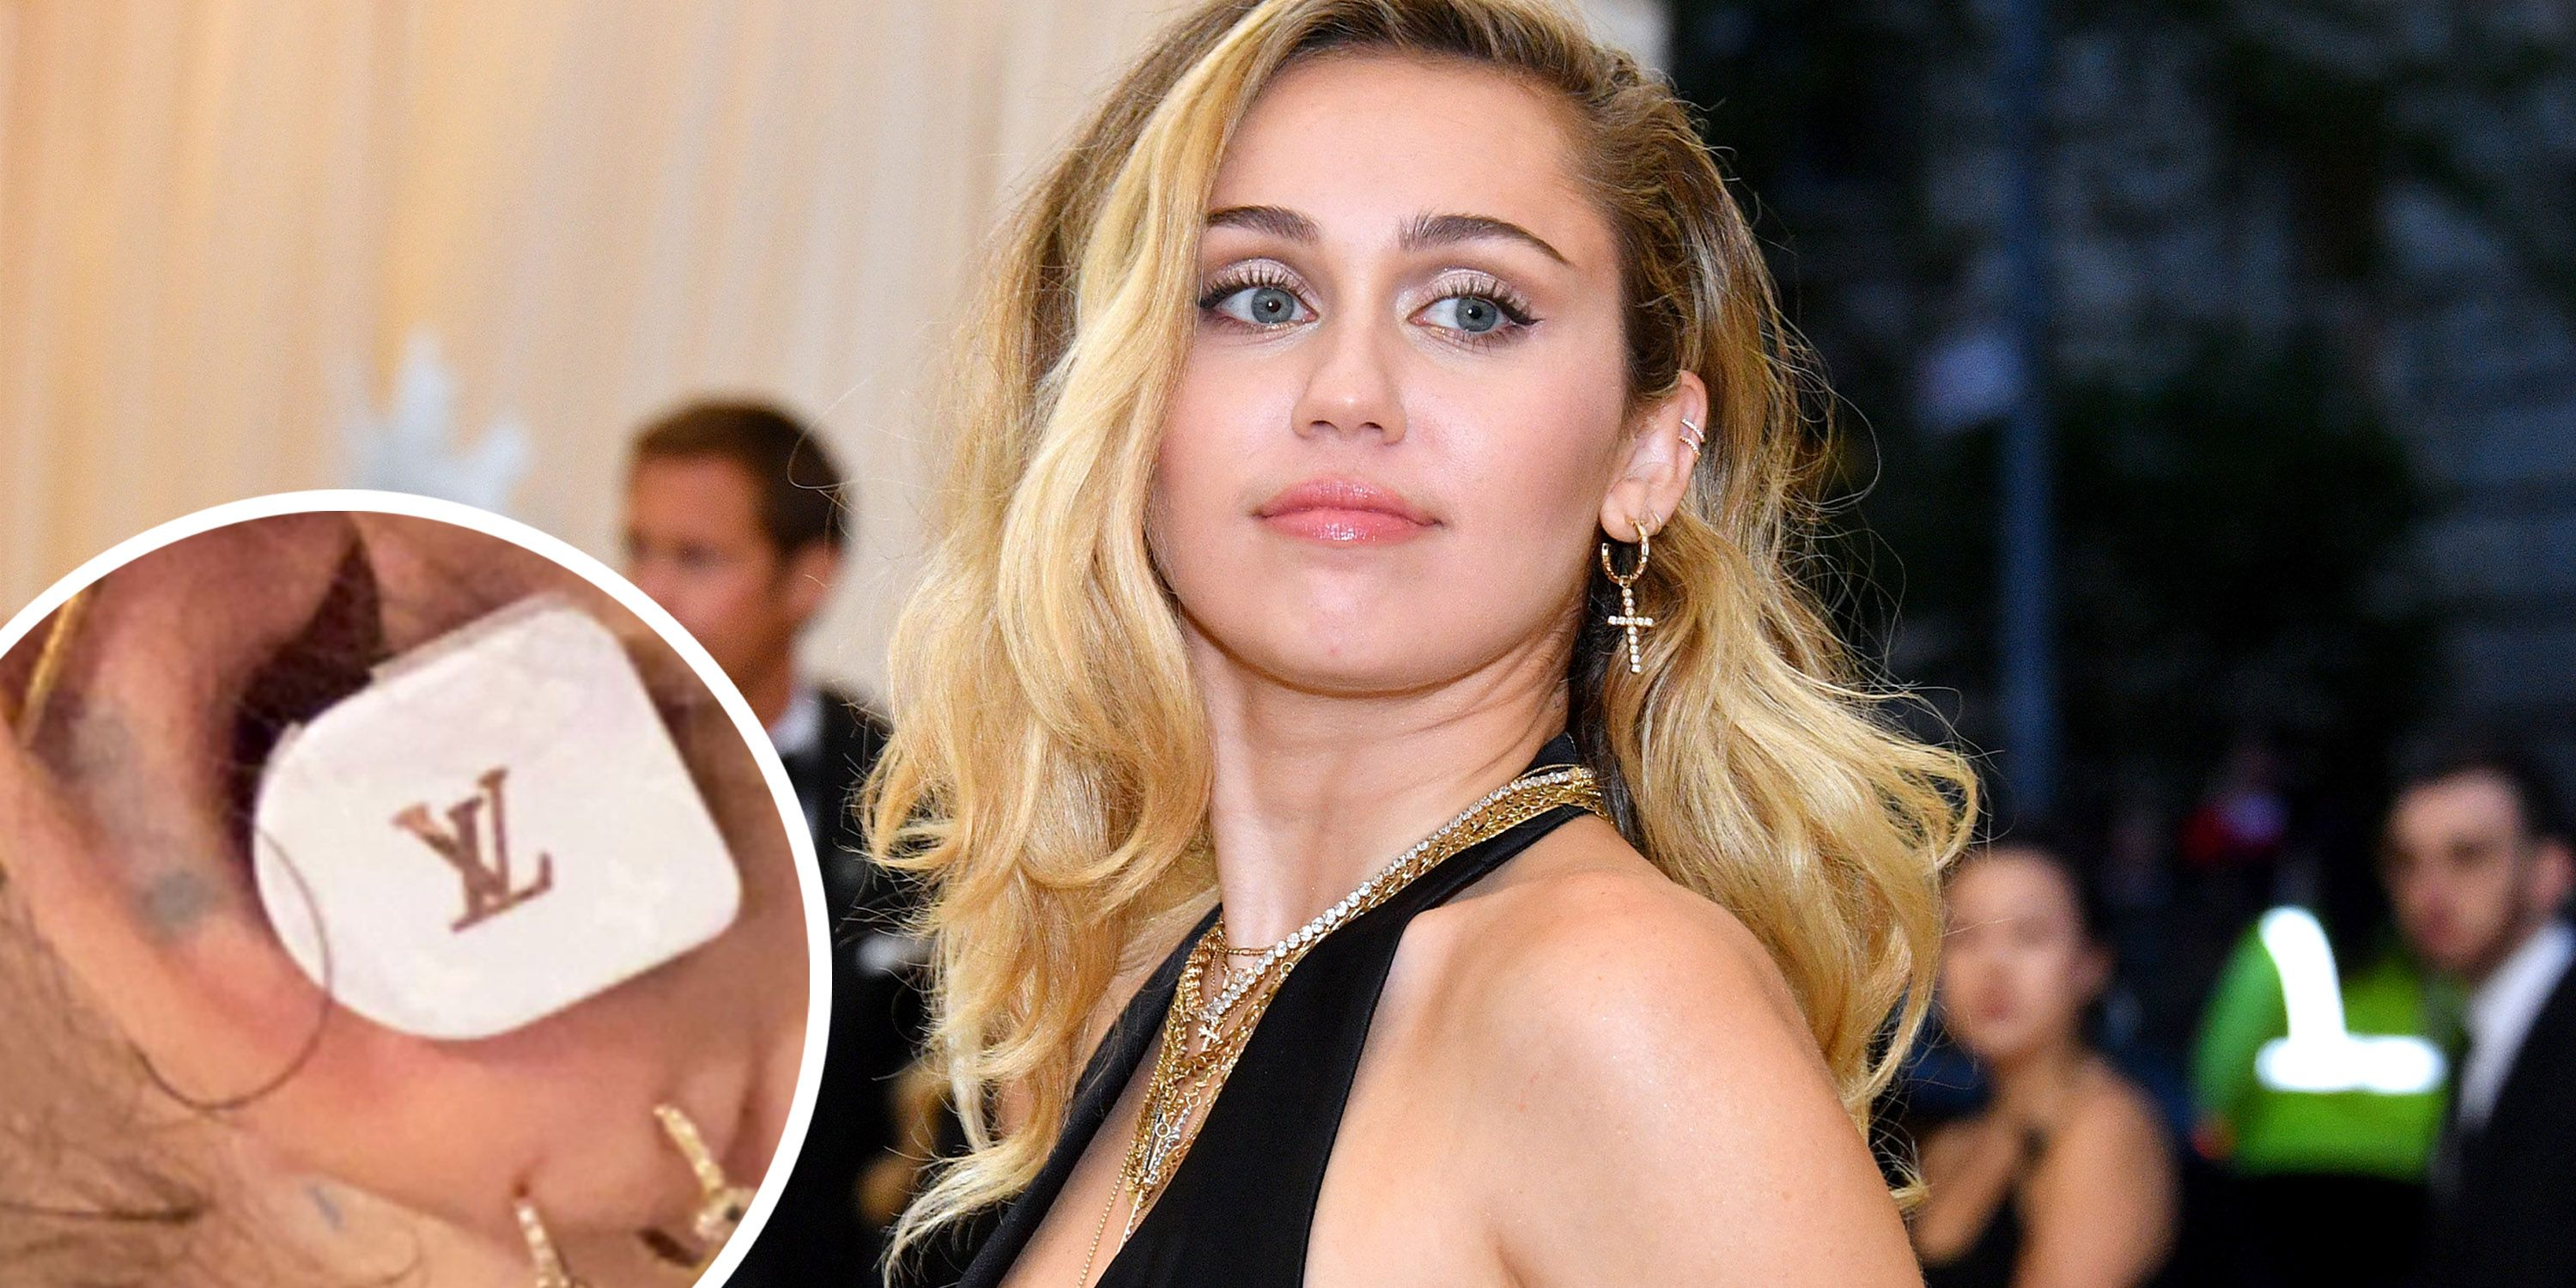 Miley Cyrus Wears The Louis Vuitton Airpods Before Theyre